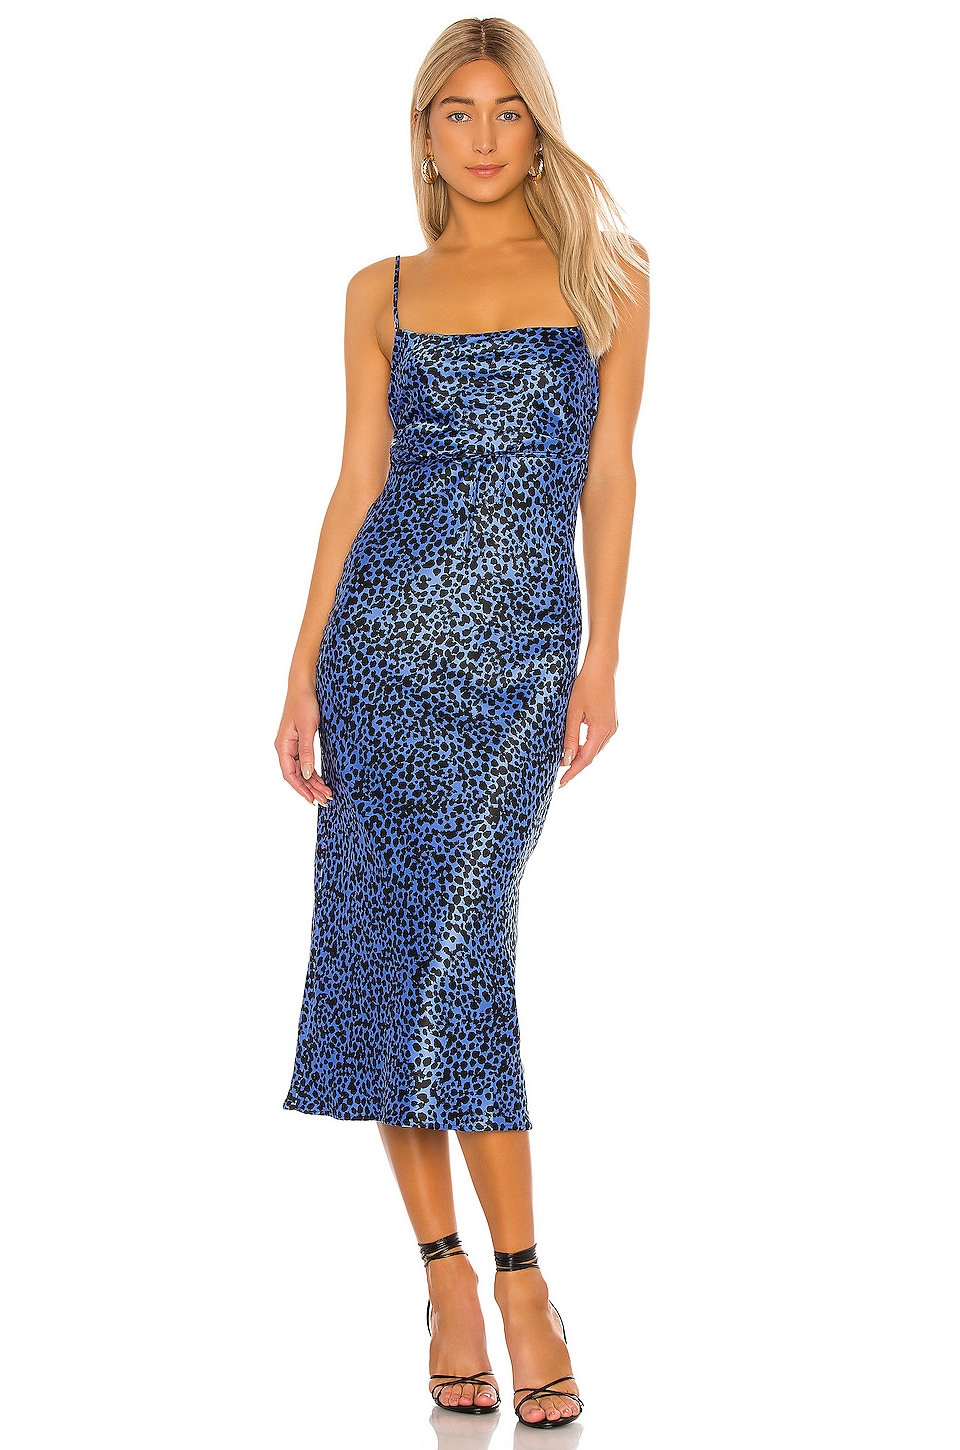 FLYNN SKYE Jackie Slip Dress in Blue